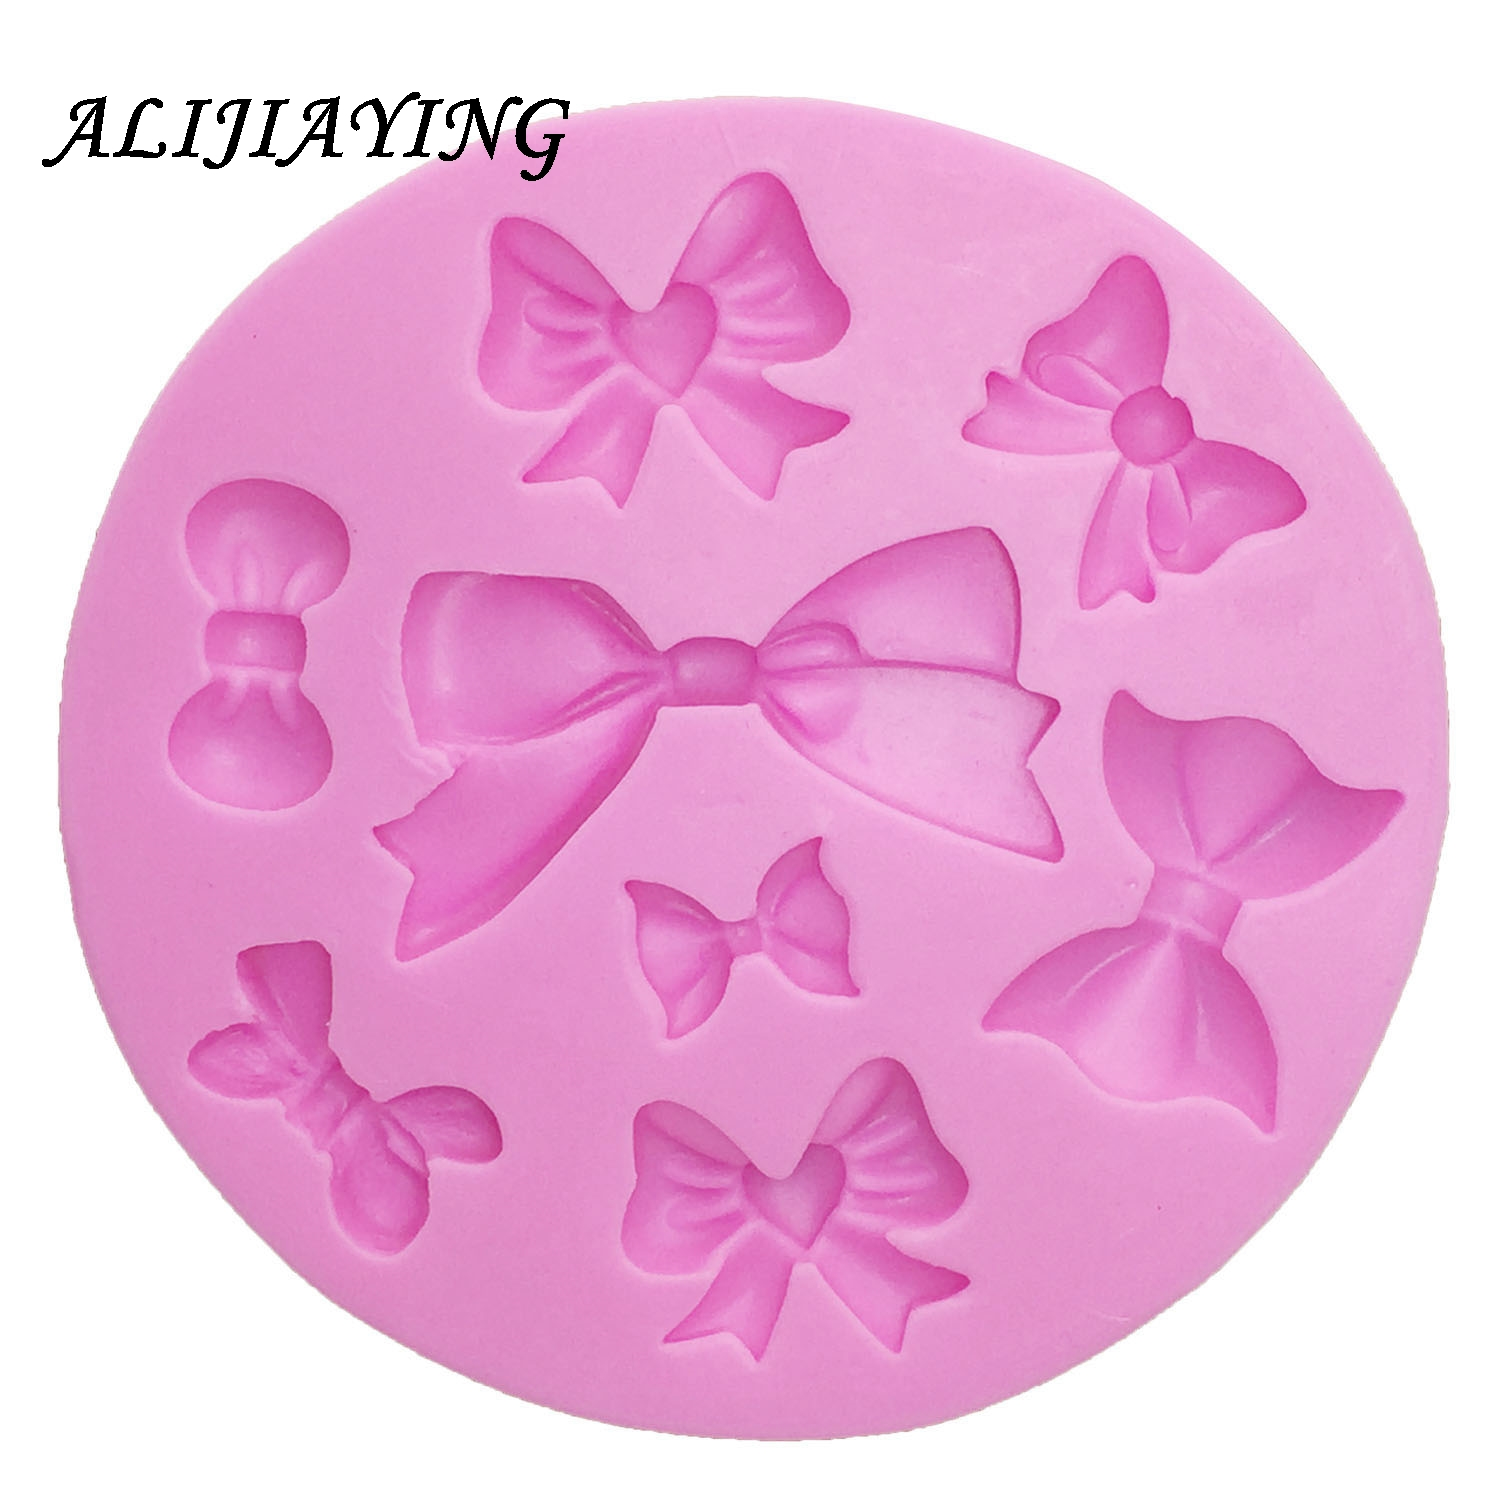 Beautiful Bow Silicone Mold Fondant Mould Cake Decorating Tools Chocolate Gumpaste Molds Sugarcraft Kitchen Accessories D0218 in Cake Molds from Home Garden